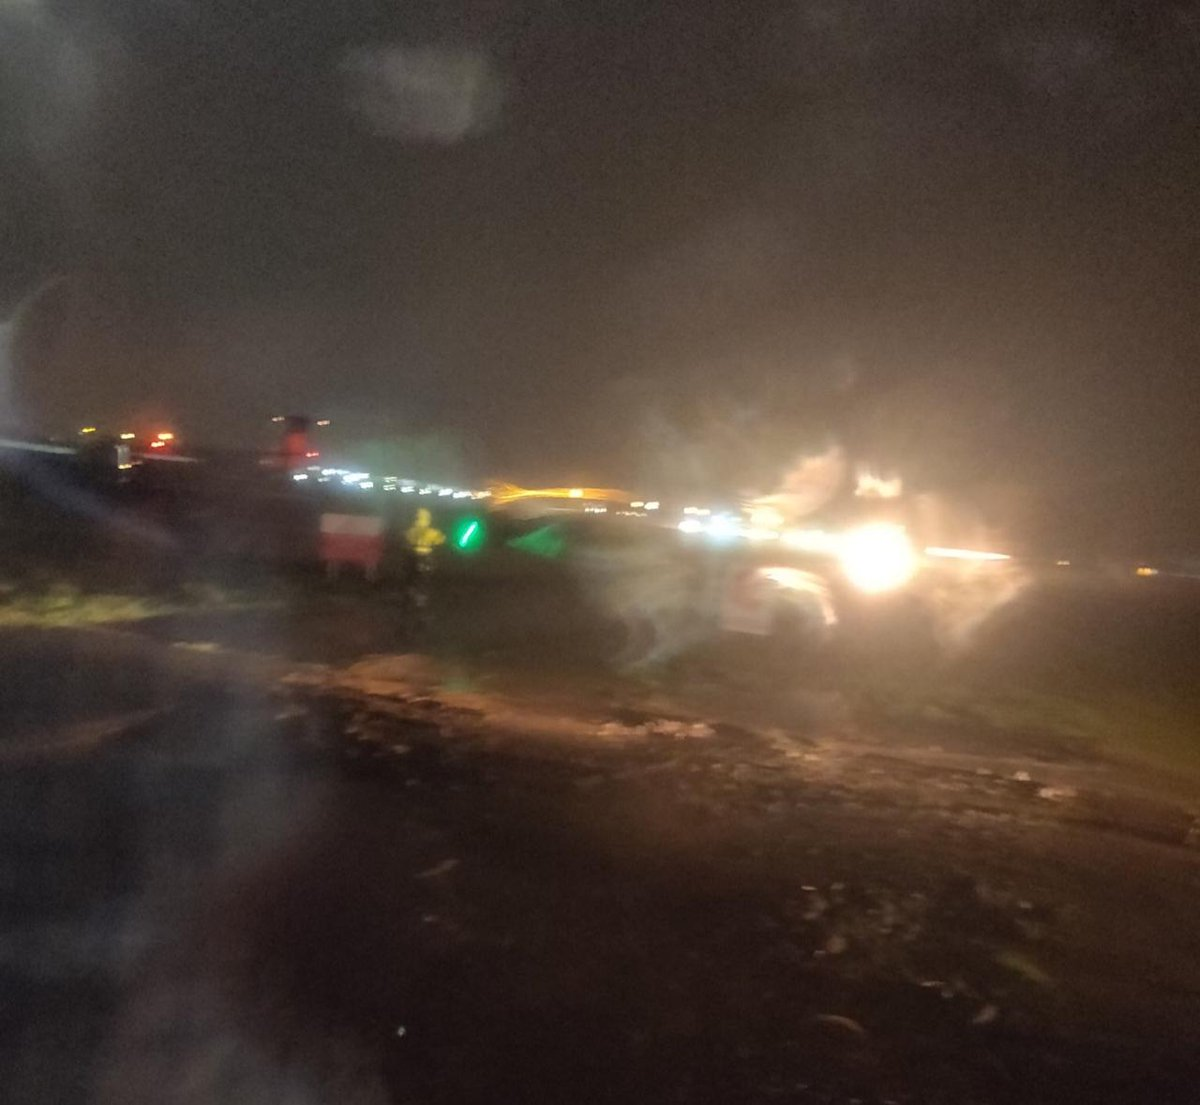 Spicejet Bhopal-Surat flight overshoots runway; passengers and crew safe, 3 flights diverted to Ahmedabad airport